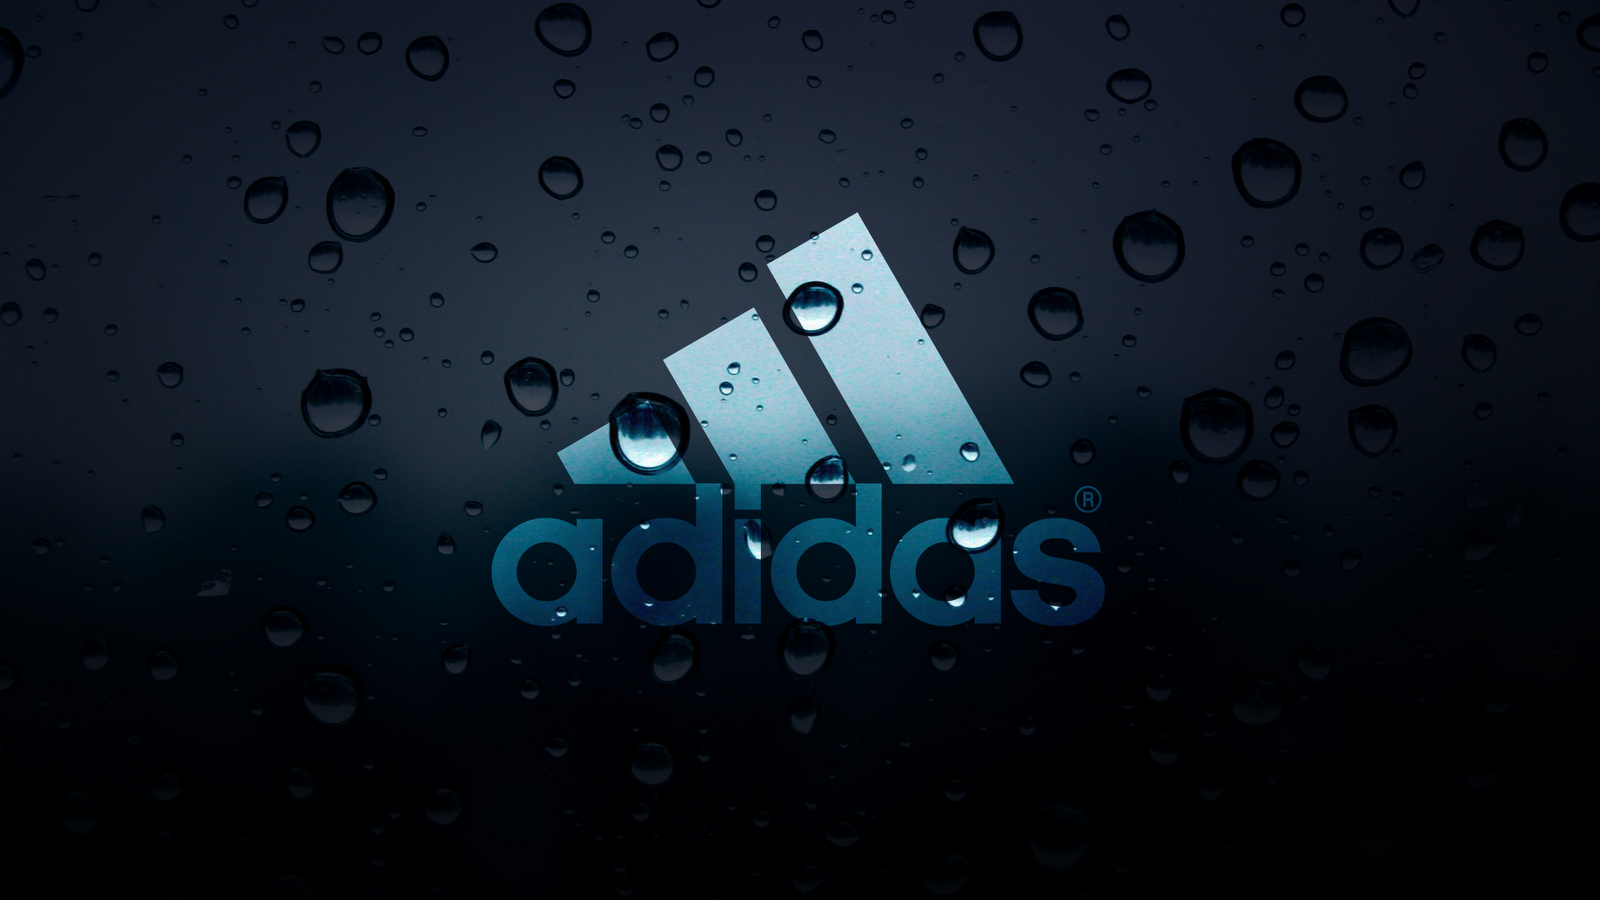 water drops adidas logo hd wallpaper | download cool hd wallpapers here.